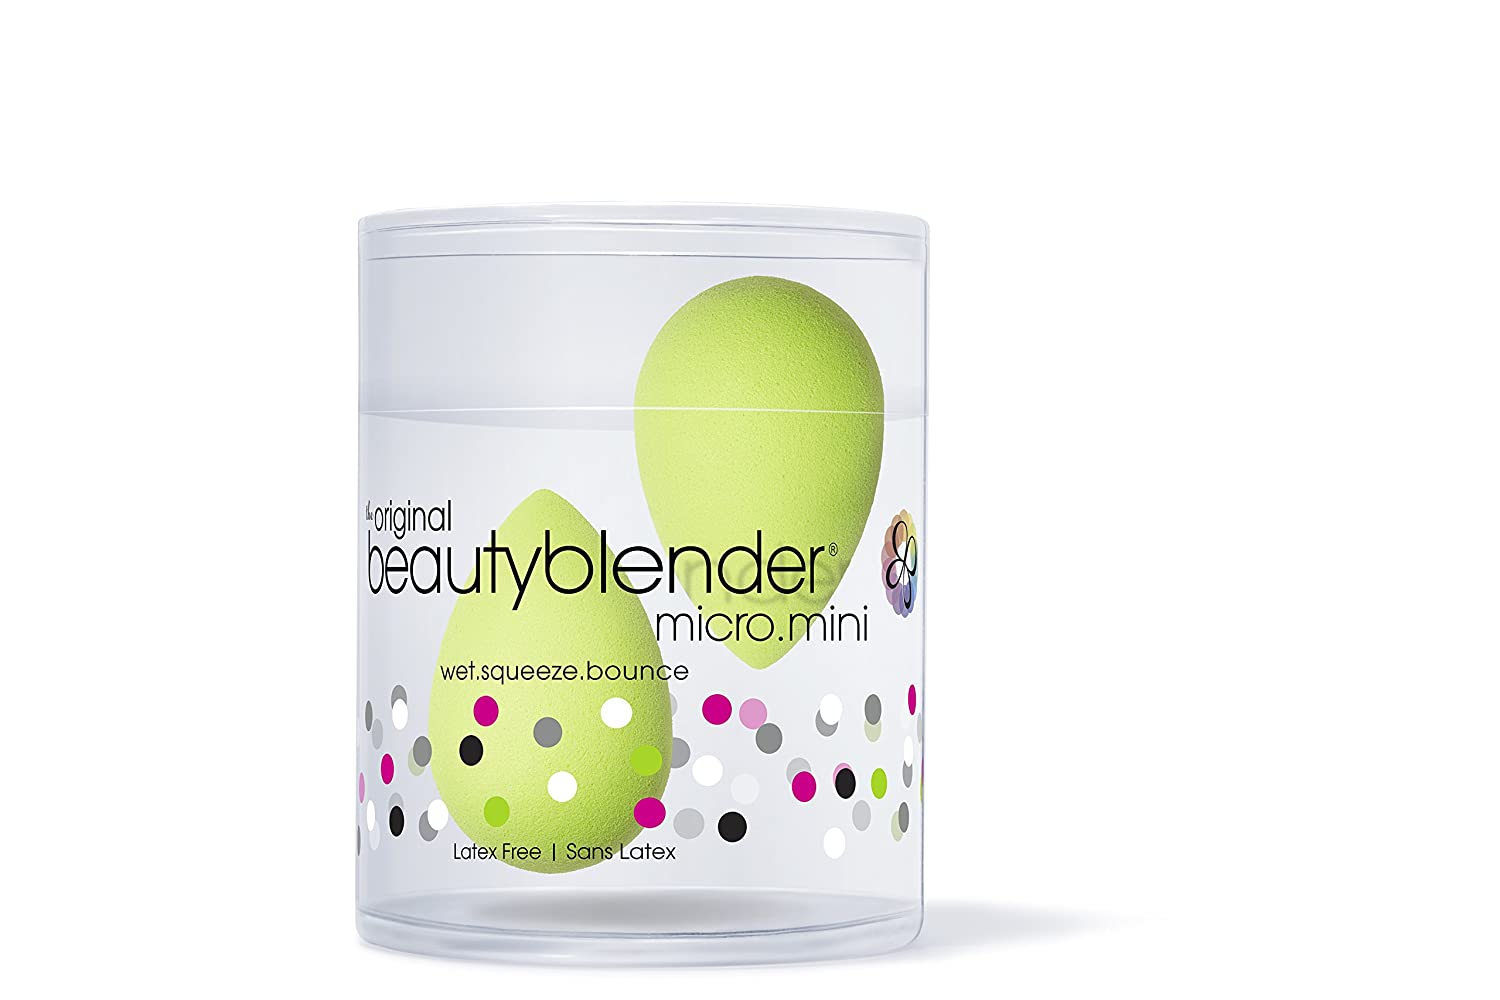 BEAUTYBLENDER MICRO.MINI Contouring, Highlighting & Concealing Makeup Sponge